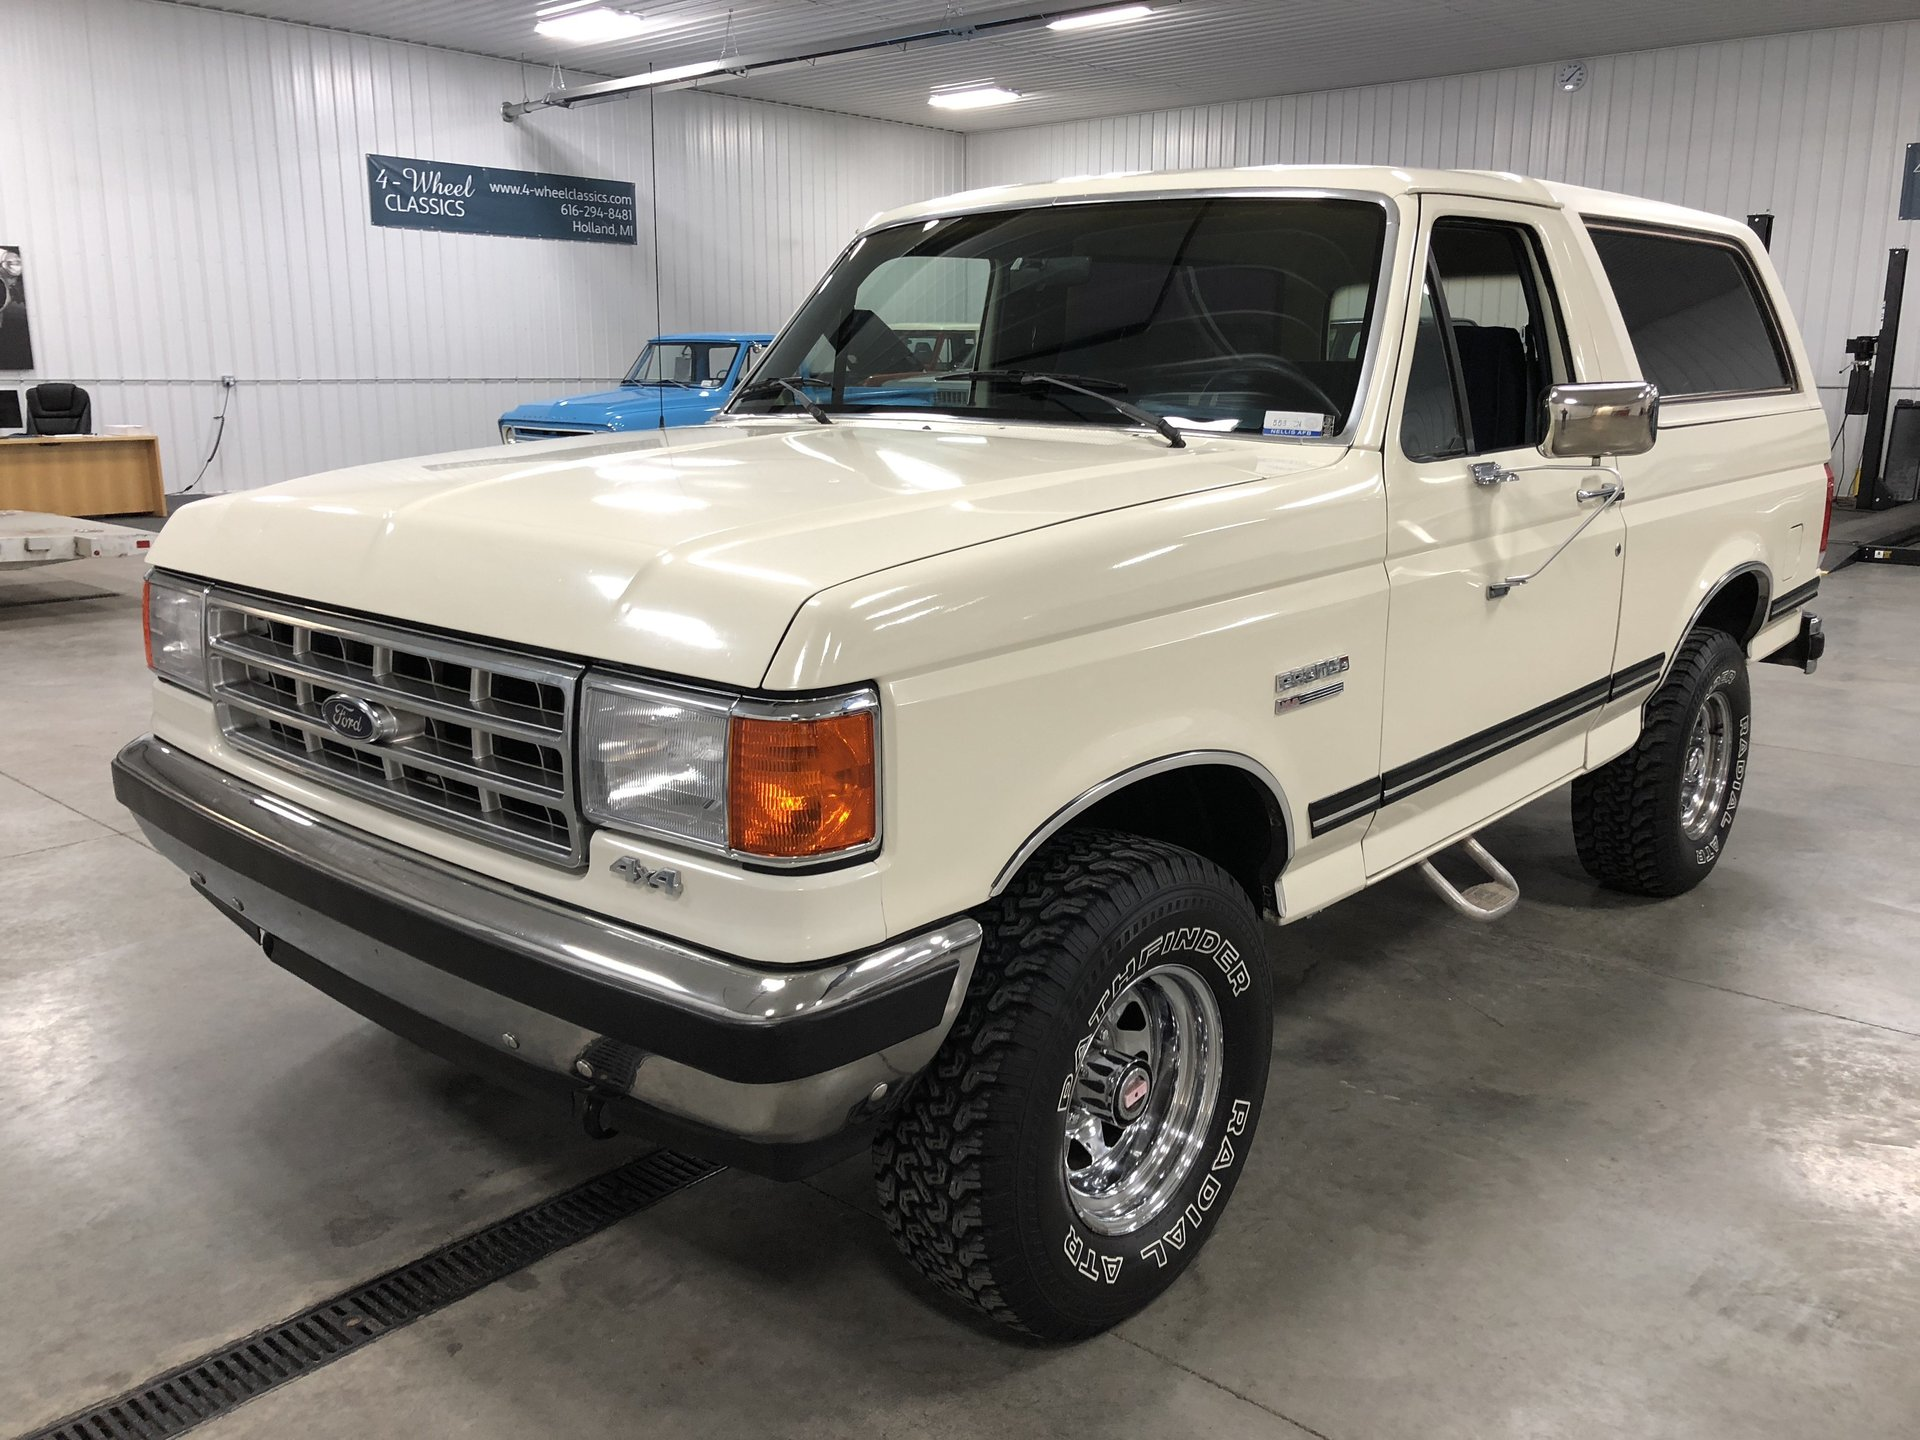 1987 ford bronco for sale 82110 mcg. Black Bedroom Furniture Sets. Home Design Ideas